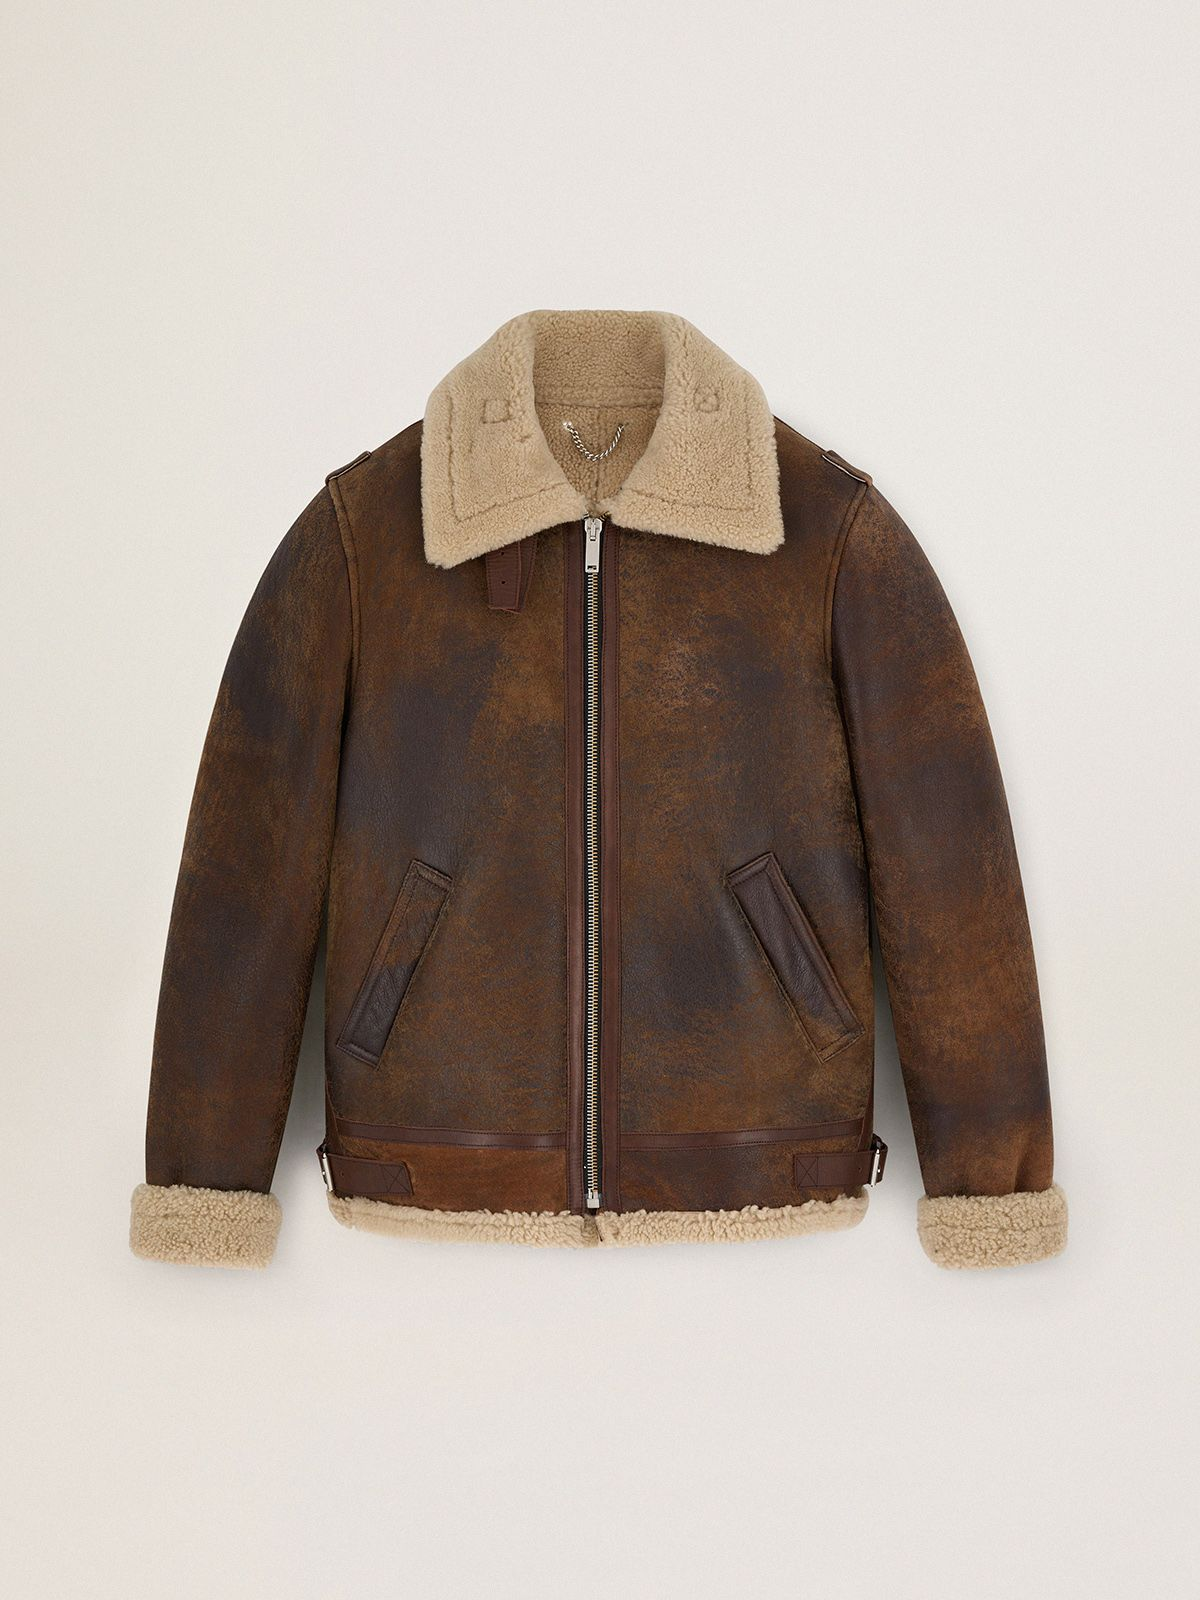 Arvel sheepskin jacket with shearling interior